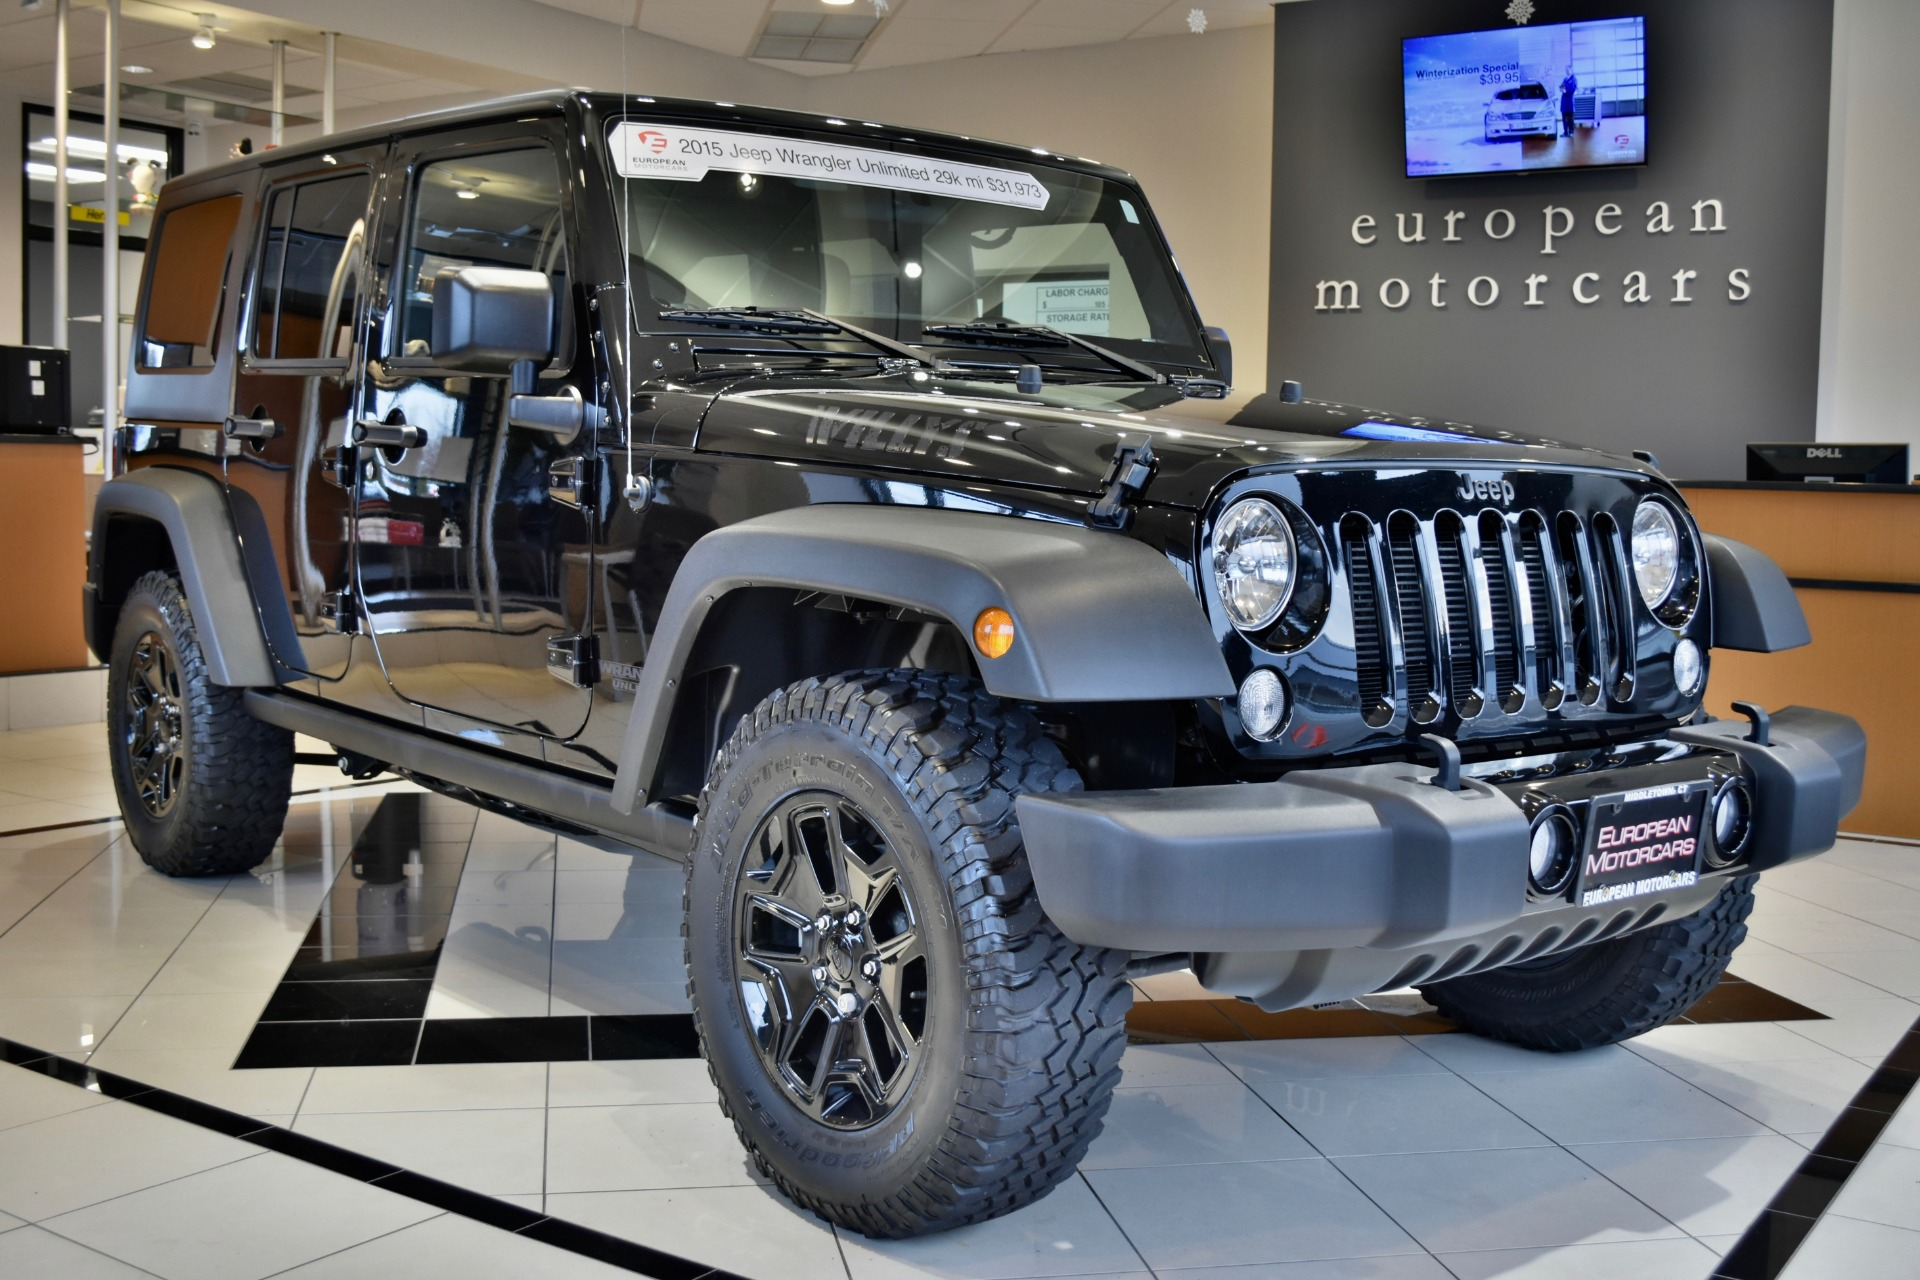 2015 jeep wrangler unlimited willys wheeler edition for for Euro motors collision center